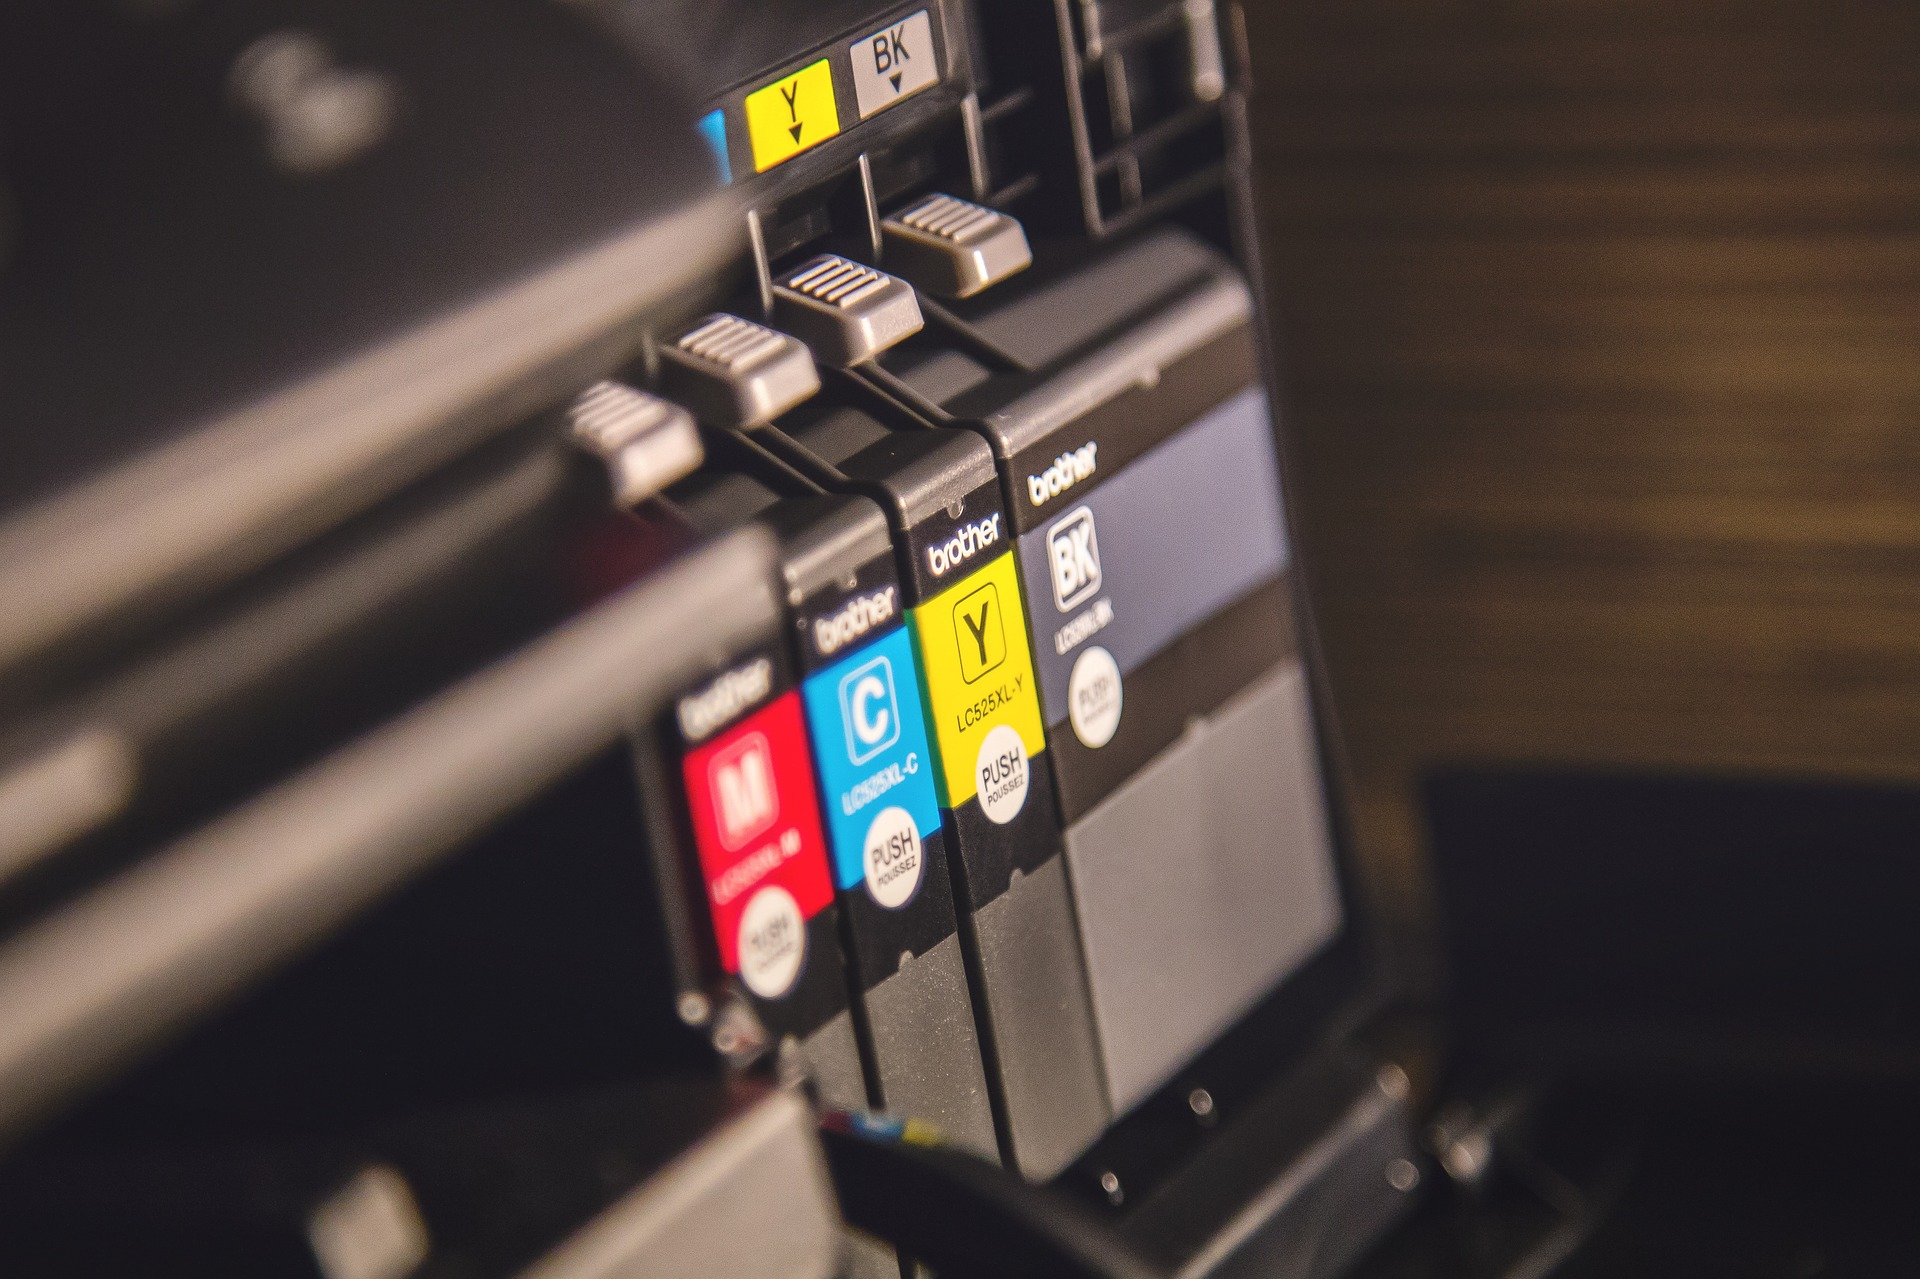 Close-up of buttons on printer